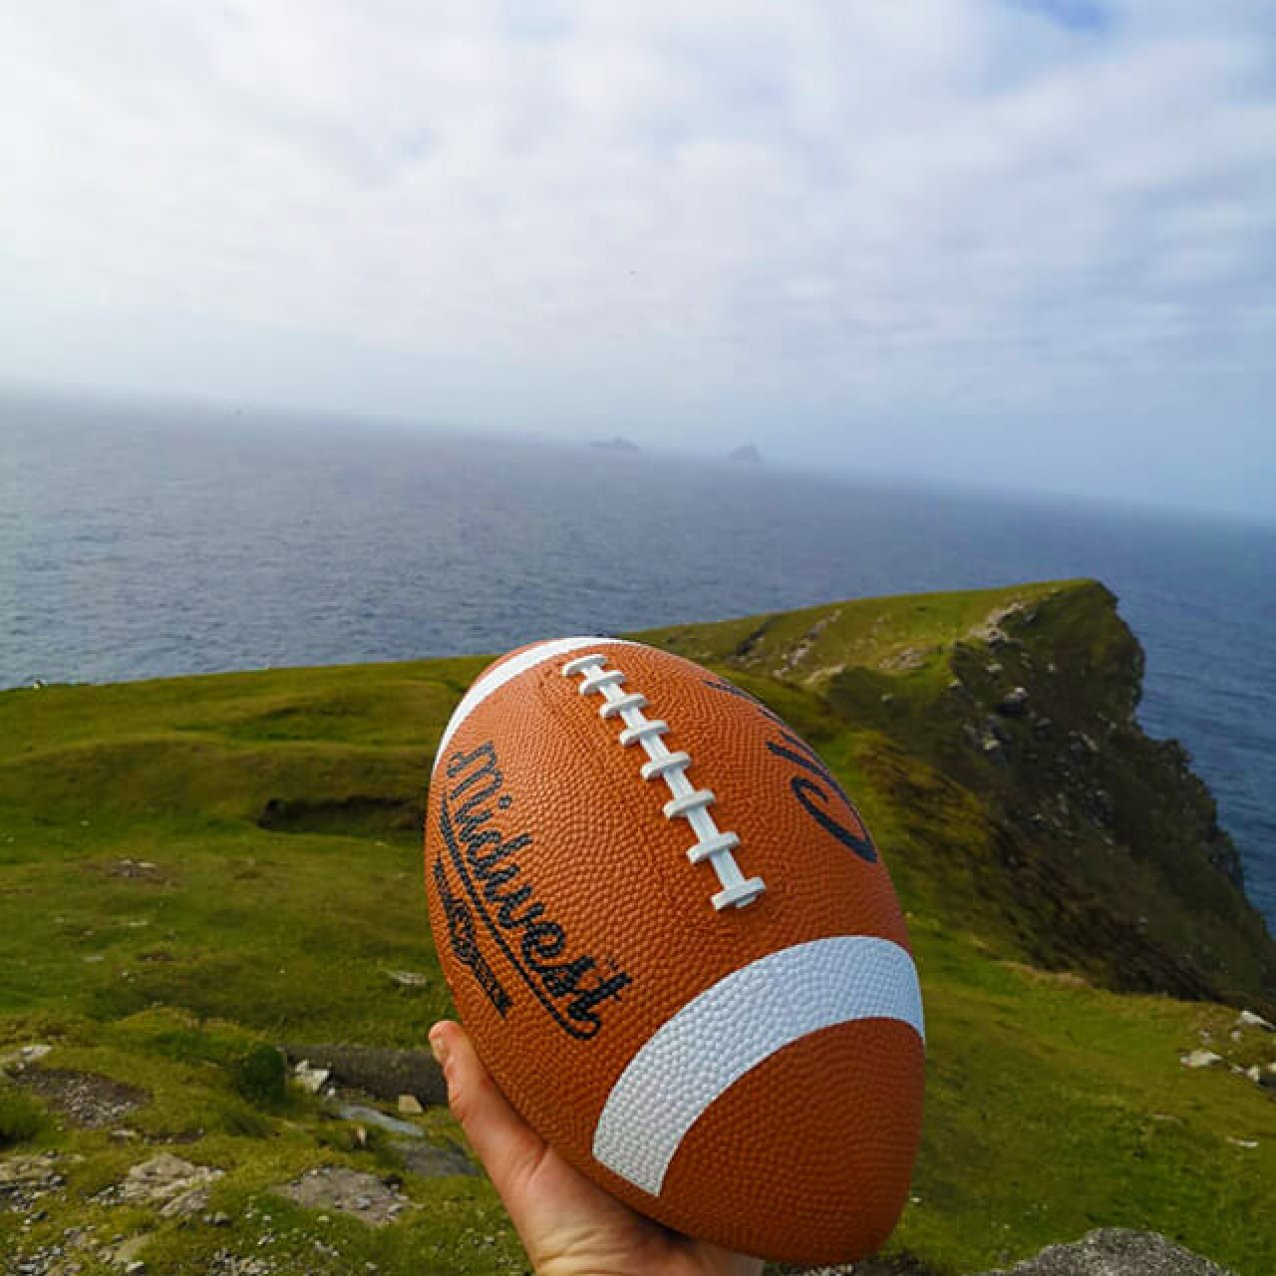 A hand holding an American football on Bray head with a view of the Skellig Islands in the background